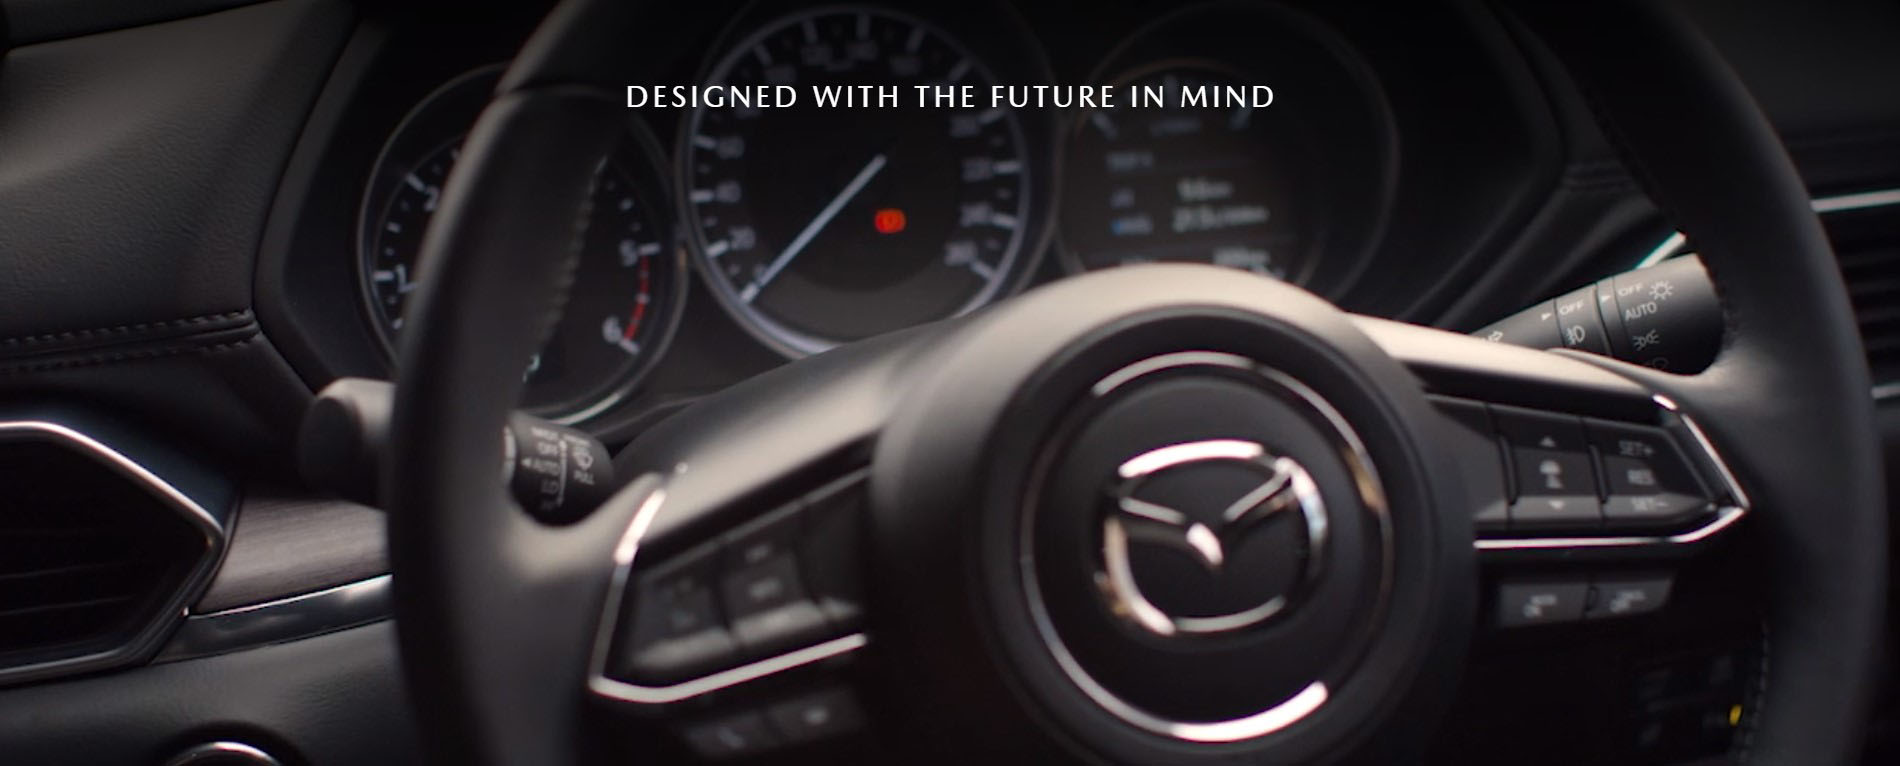 Designed-with-the-Future-in-Mind